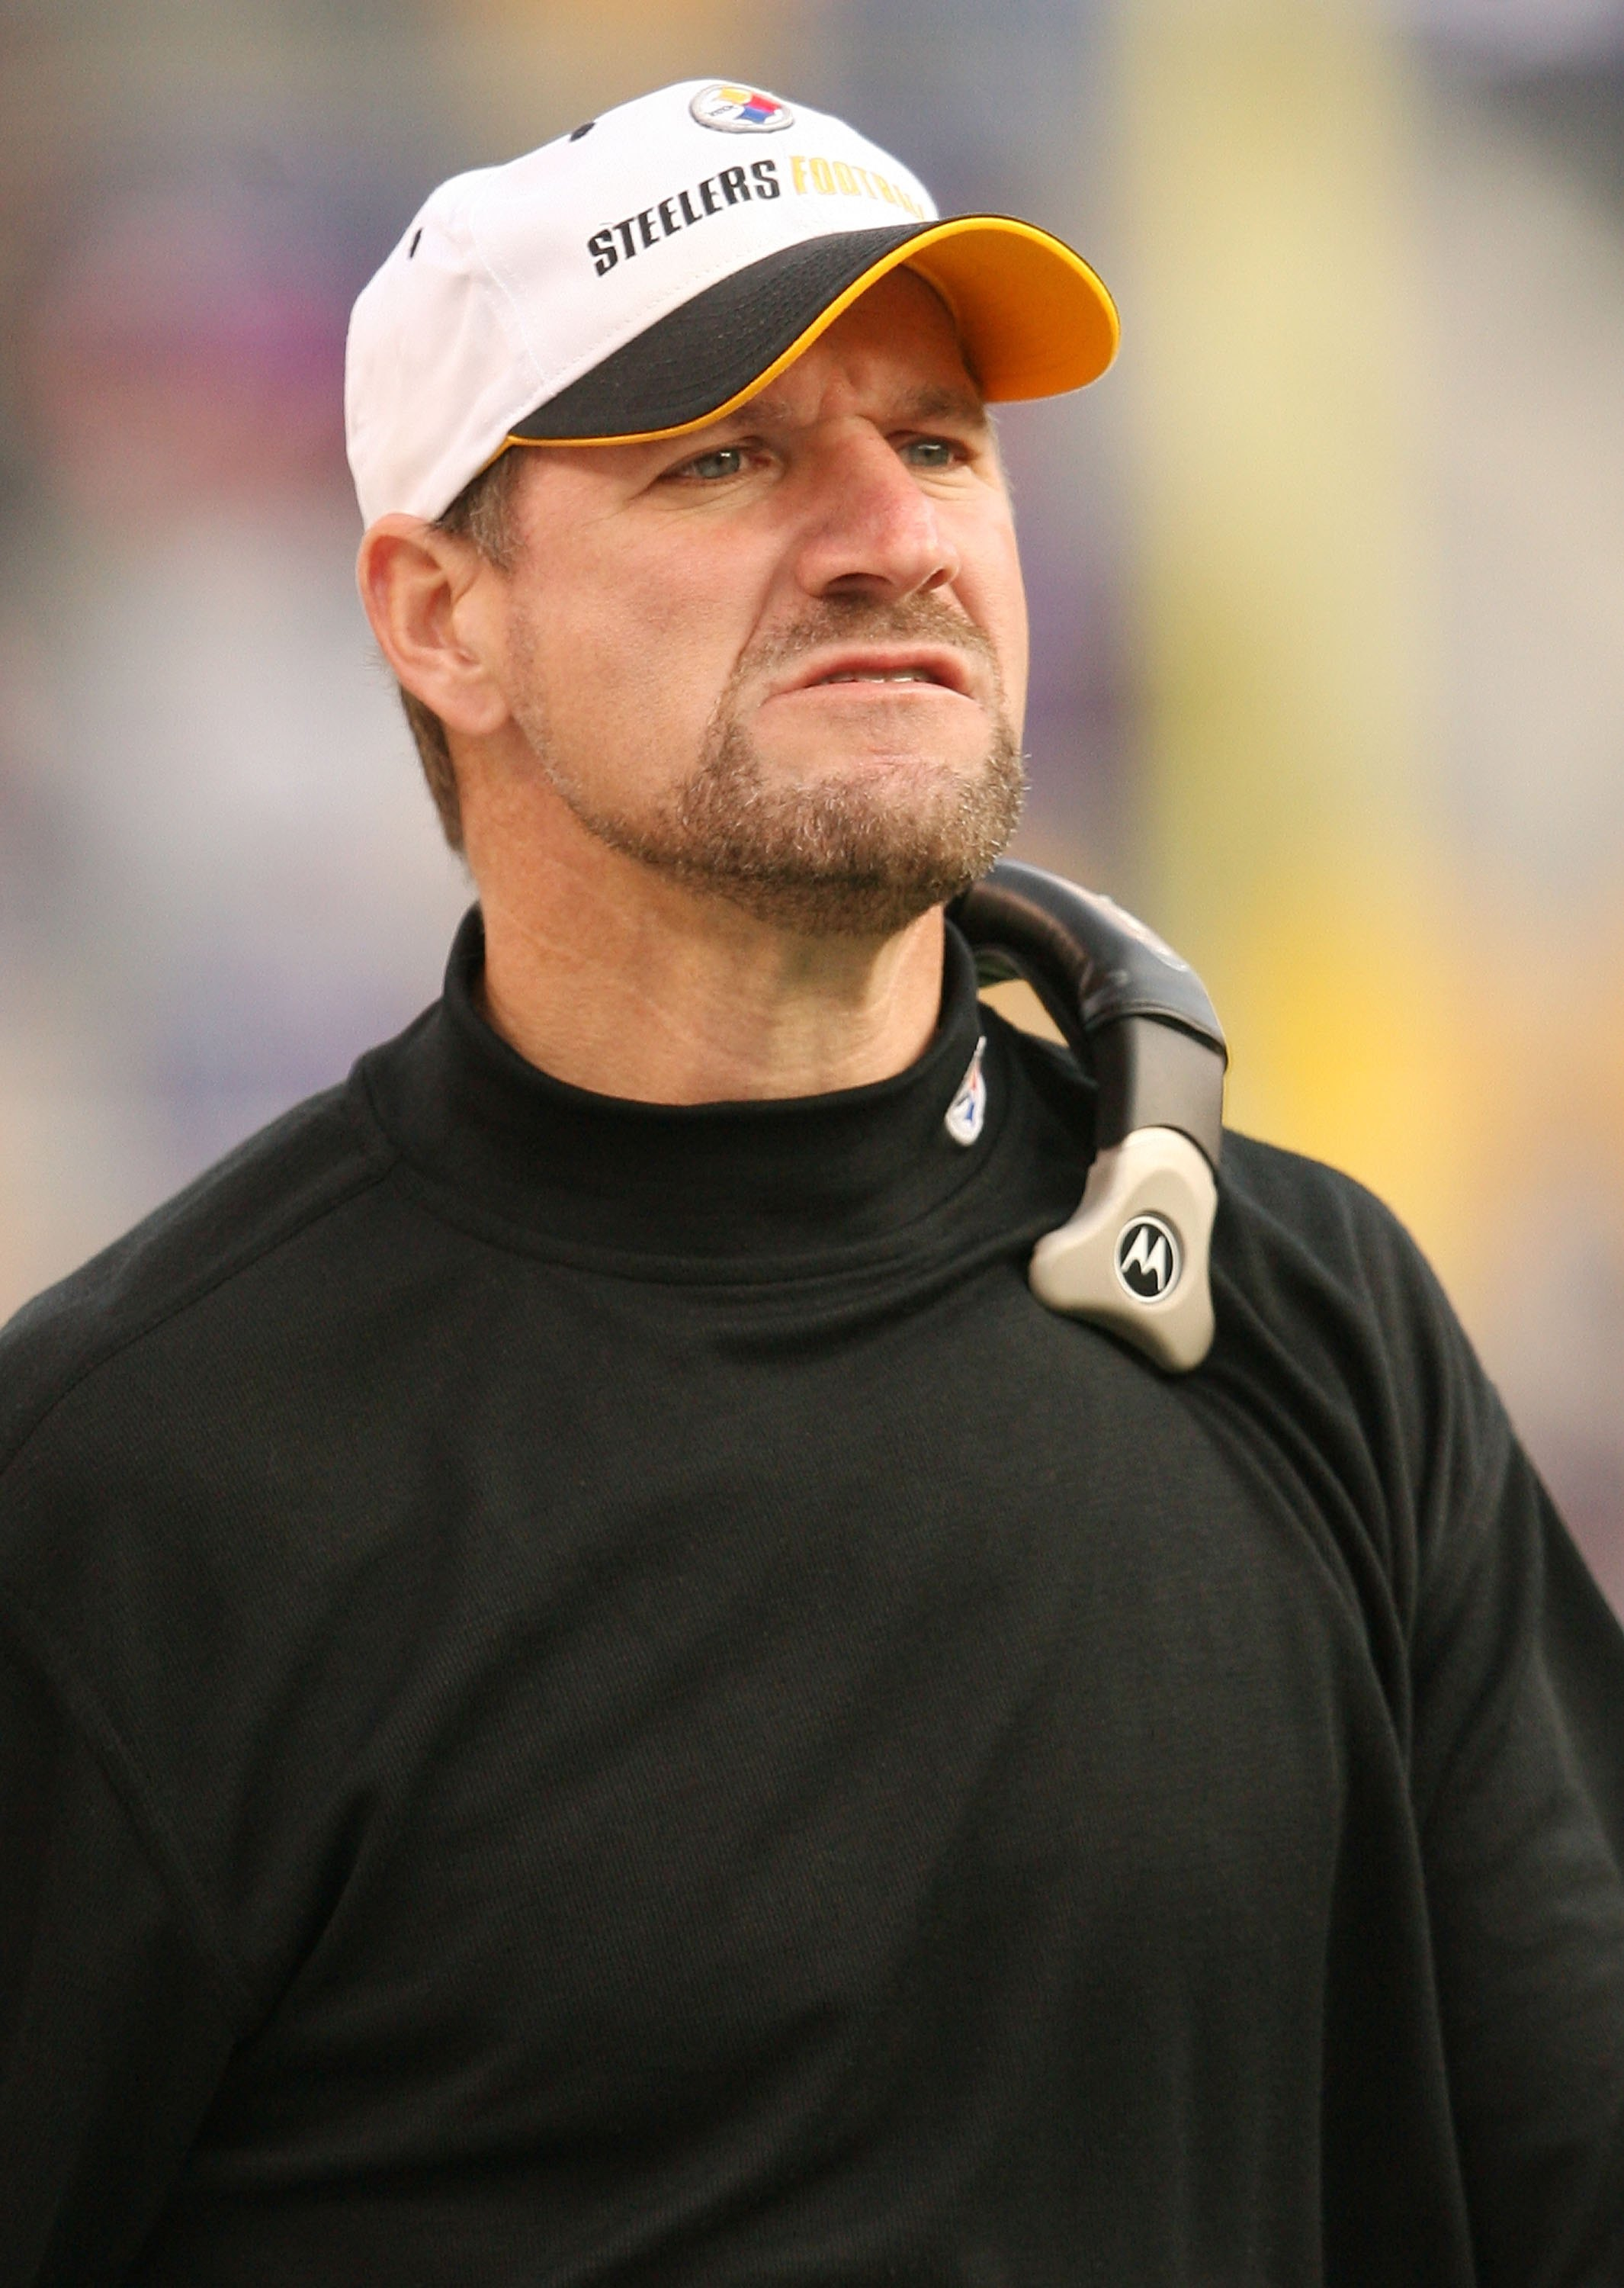 BALTIMORE - NOVEMBER 26:  Bill Cowher, coach of the Pittsburgh Steelers watches on from the sideline against the Baltimore Ravens at M & T Bank Stadium November 26, 2006 in Baltimore, Maryland.  (Photo by Nick Laham/Getty Images)